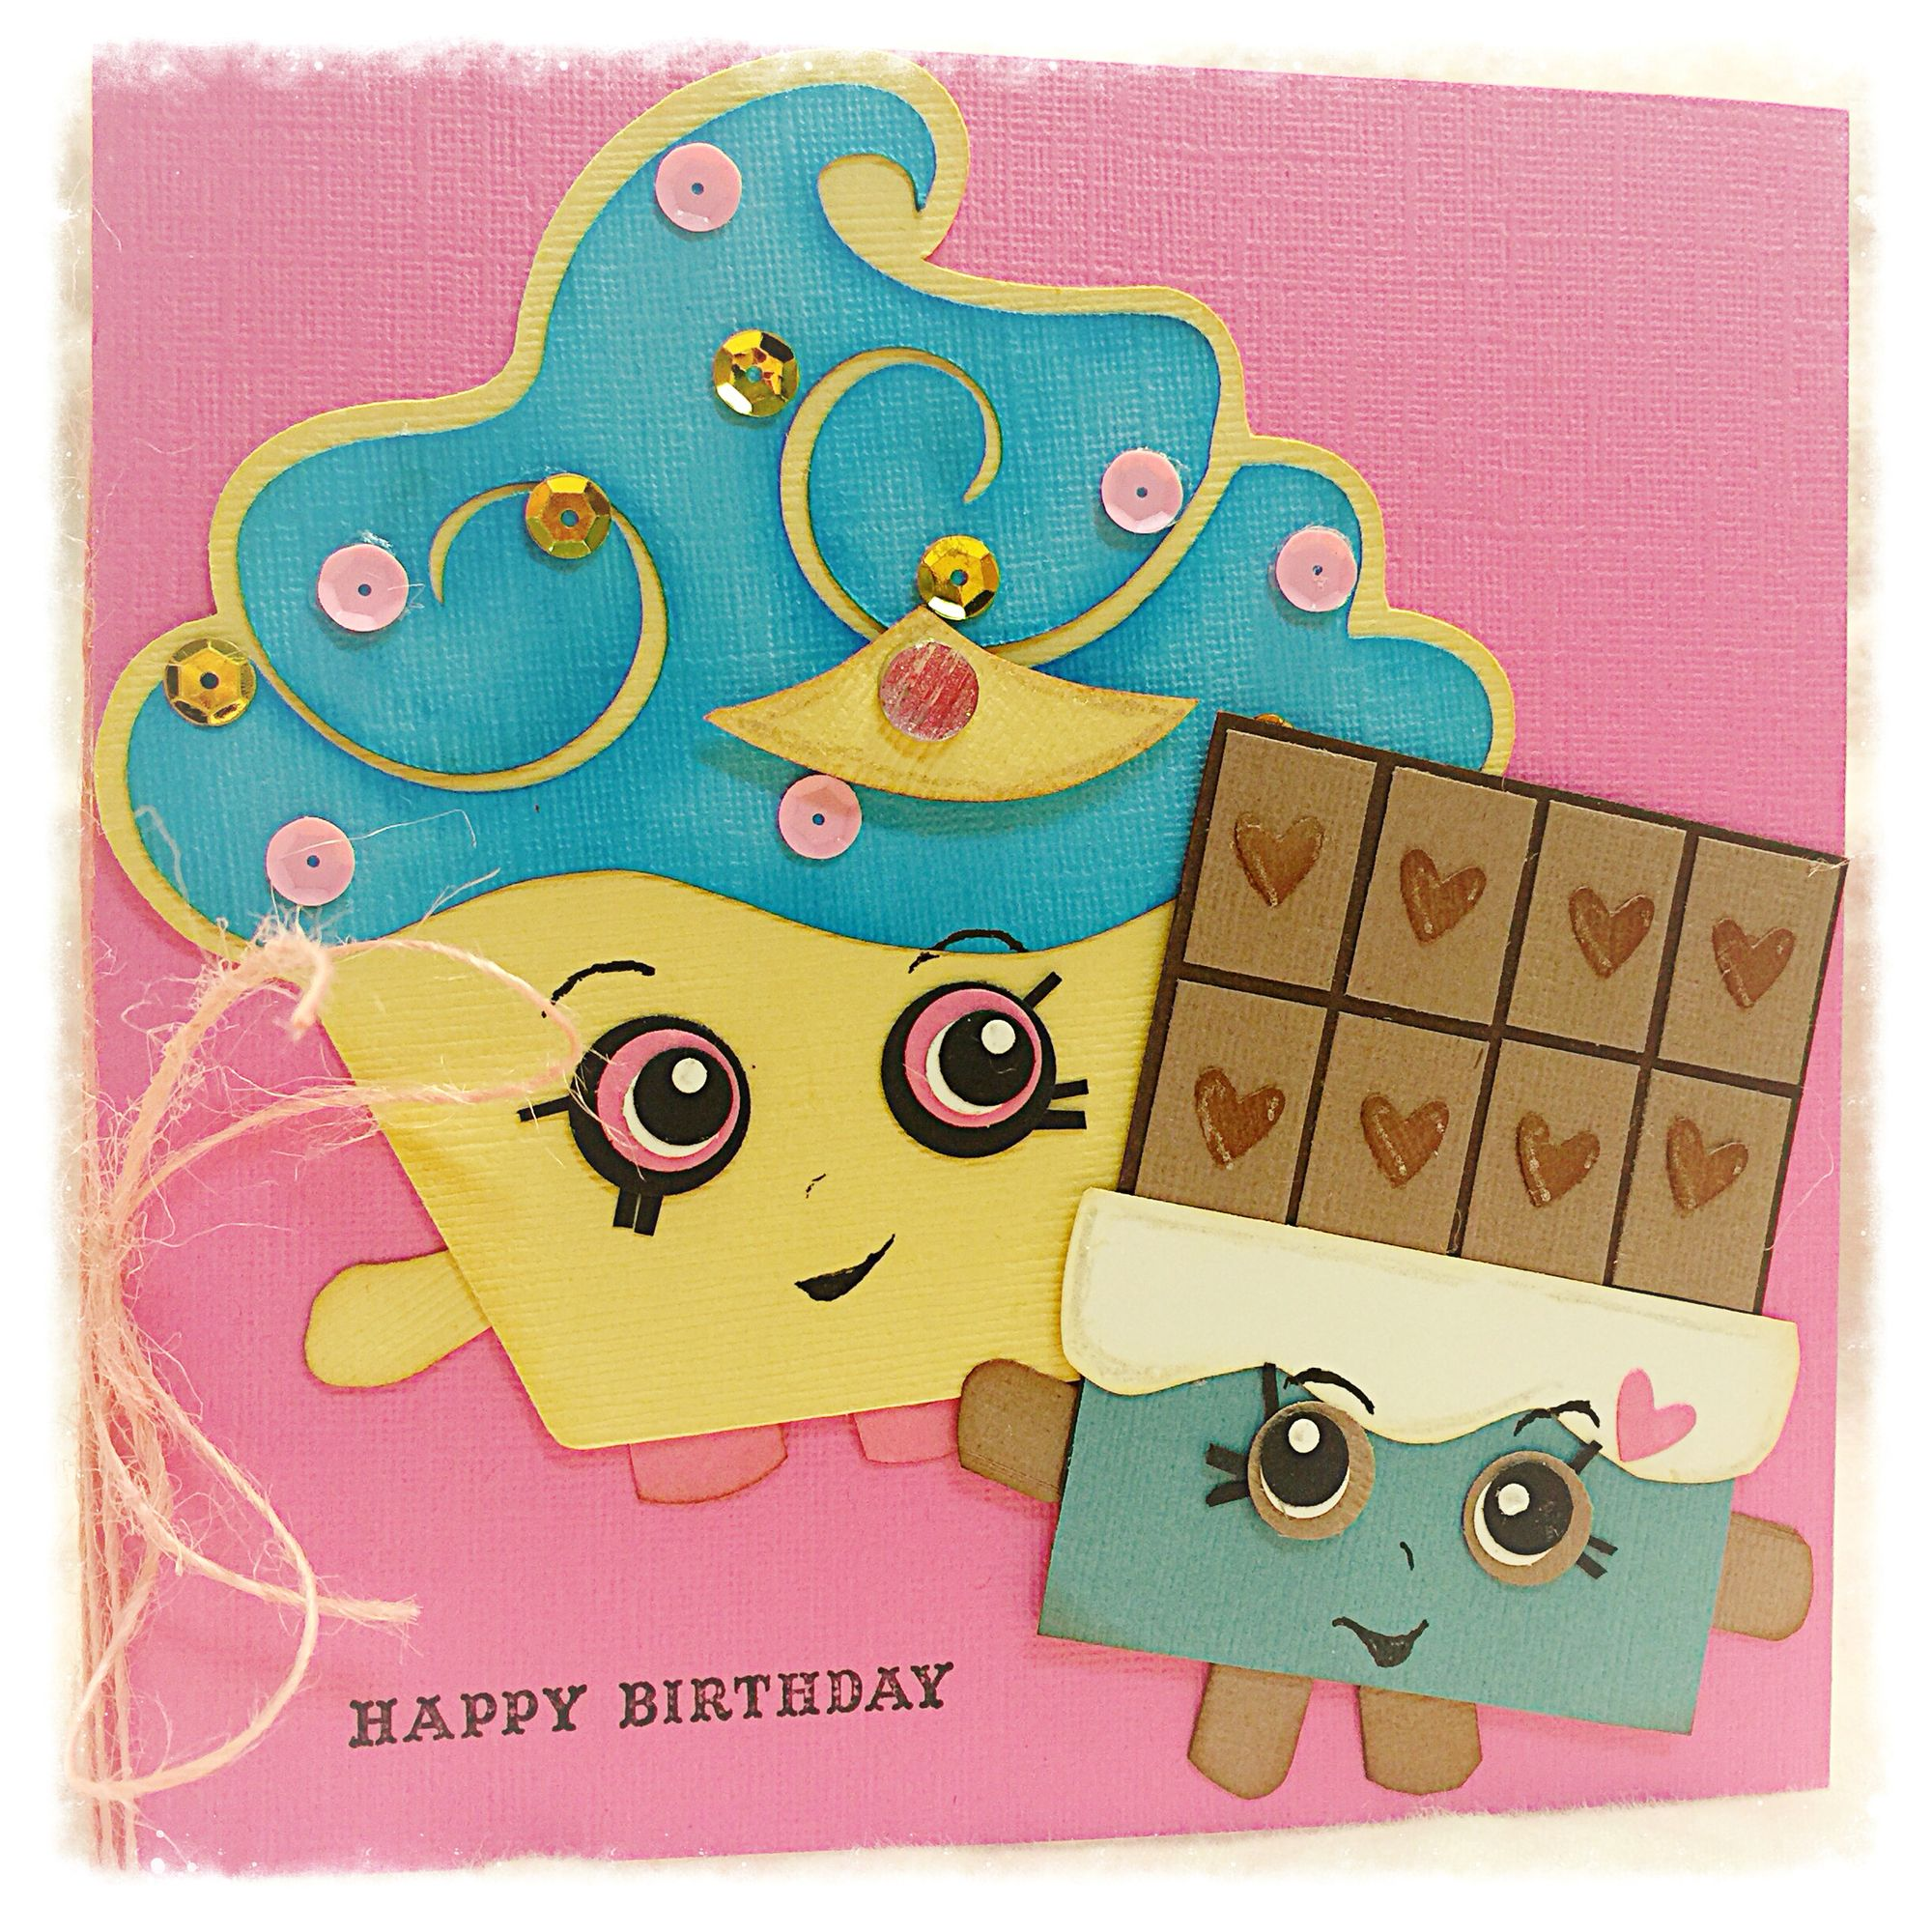 Shopkins birthday card made with cricut and punches and a lot of shopkins birthday card made with cricut and punches and a lot of creativity bookmarktalkfo Image collections